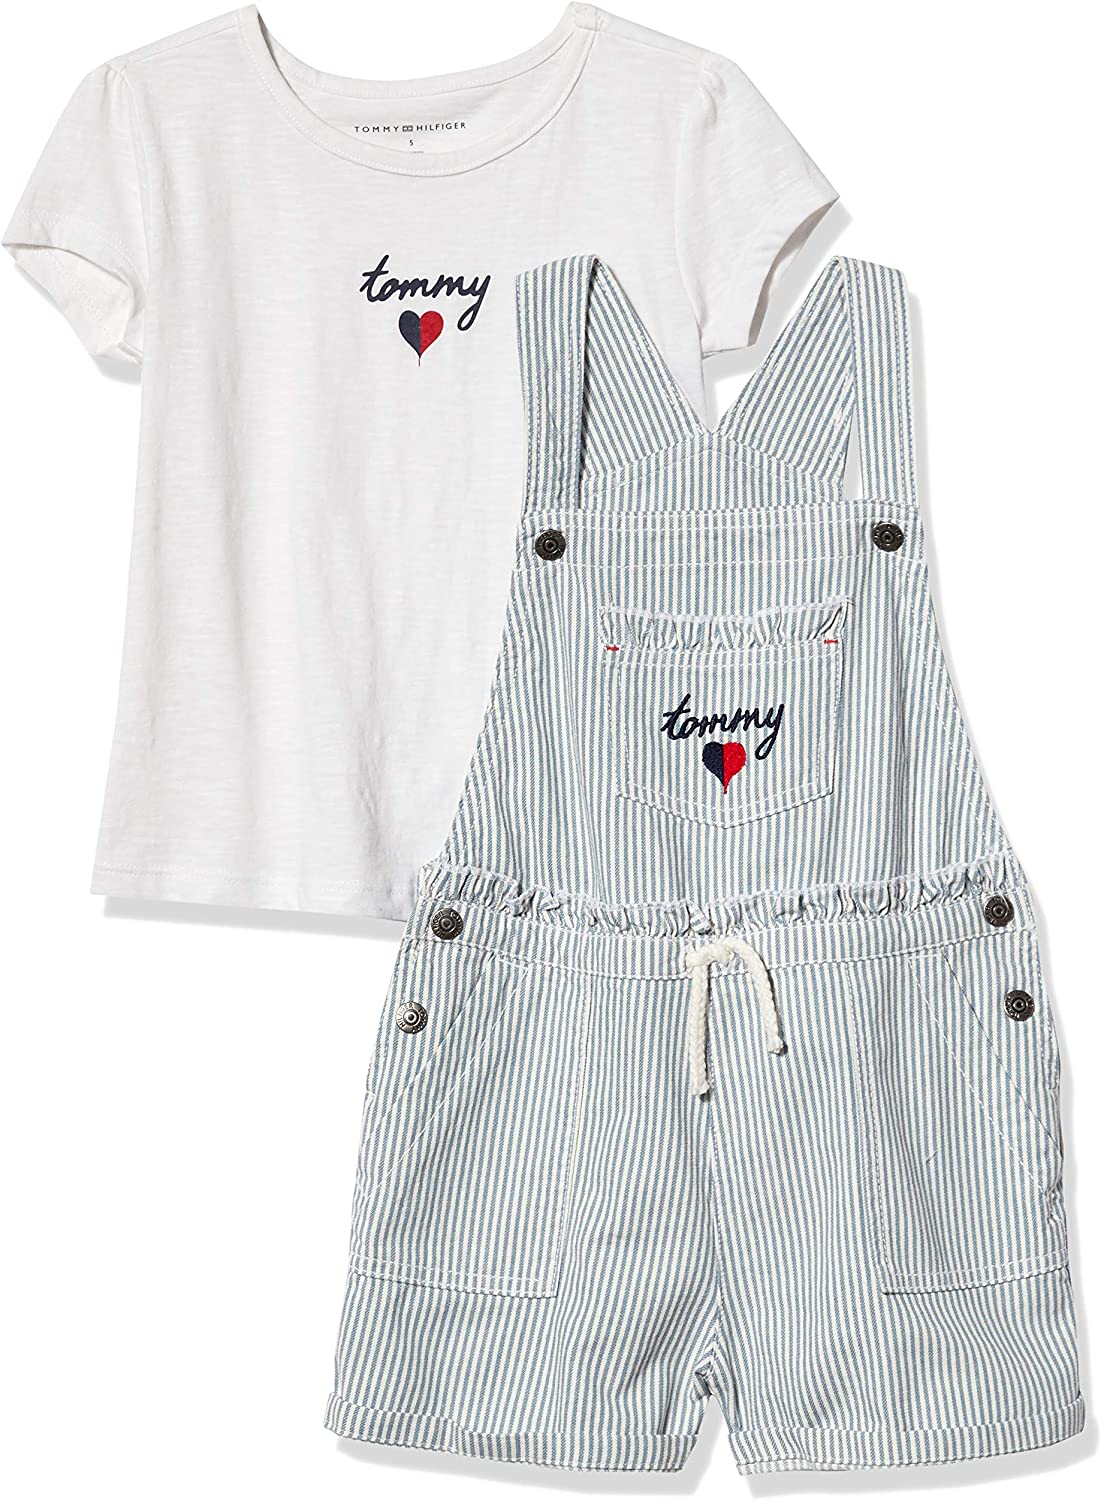 Tommy Hilfiger Baby Boys 2 Pieces Shortall